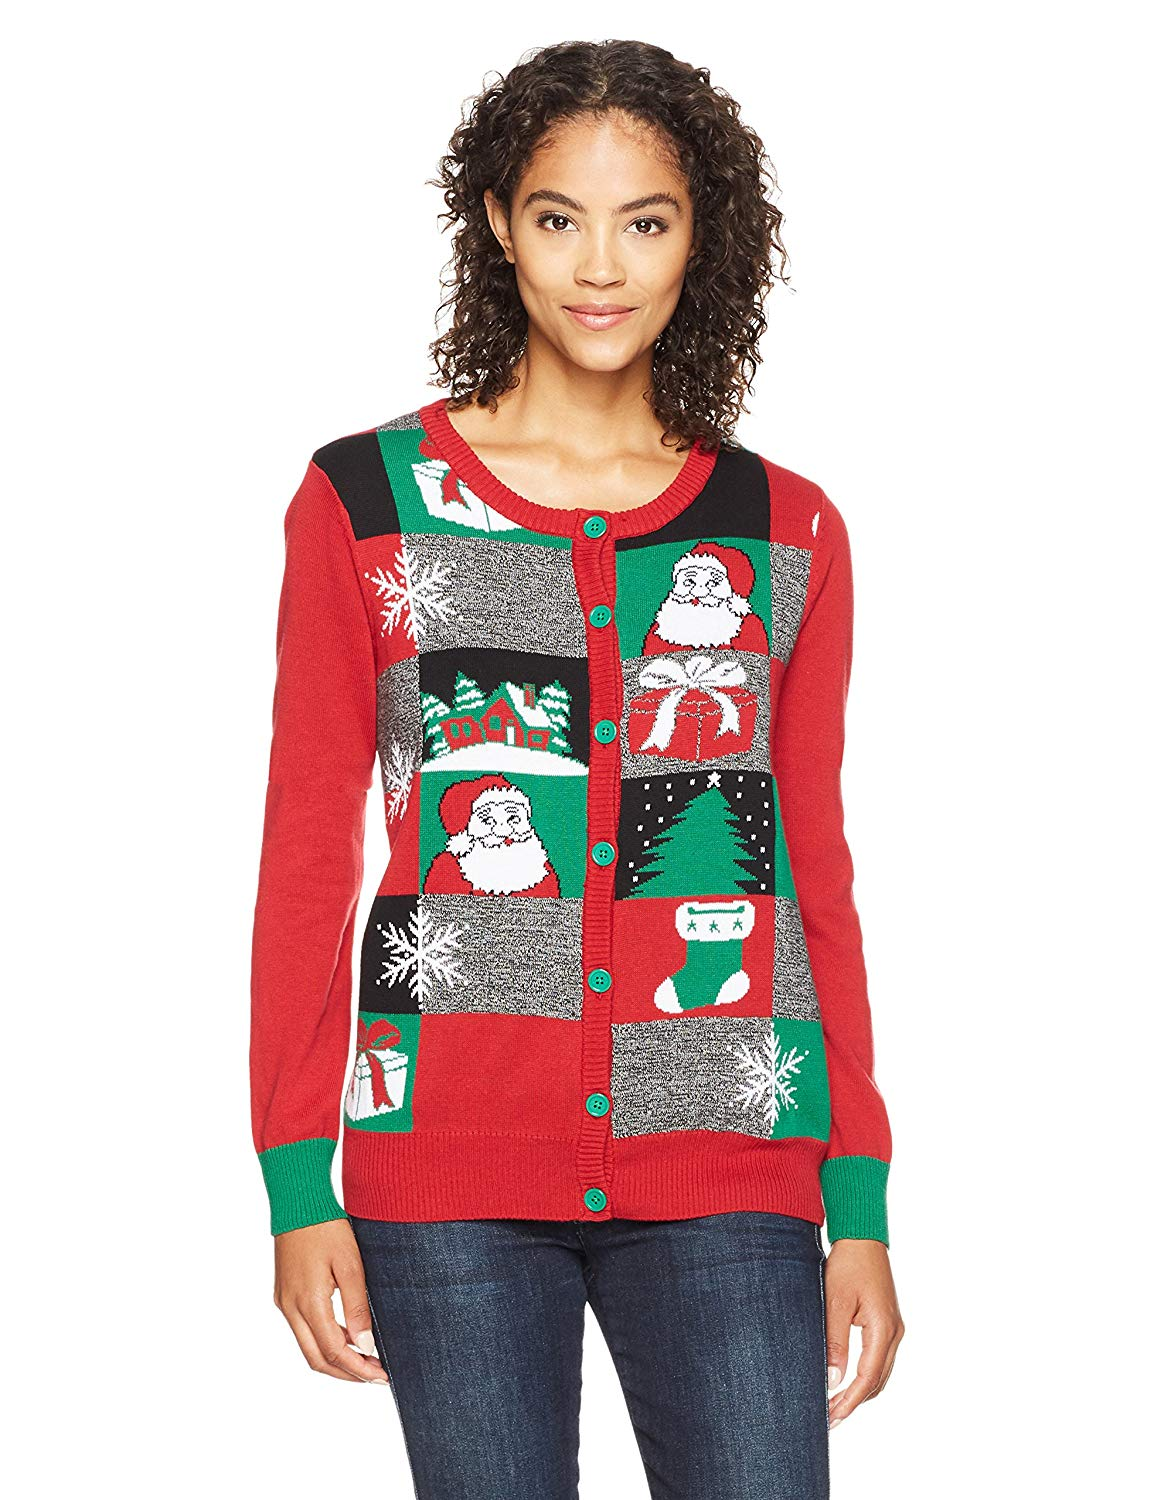 Cheap Ugly Christmas Sweater For Women Find Ugly Christmas Sweater